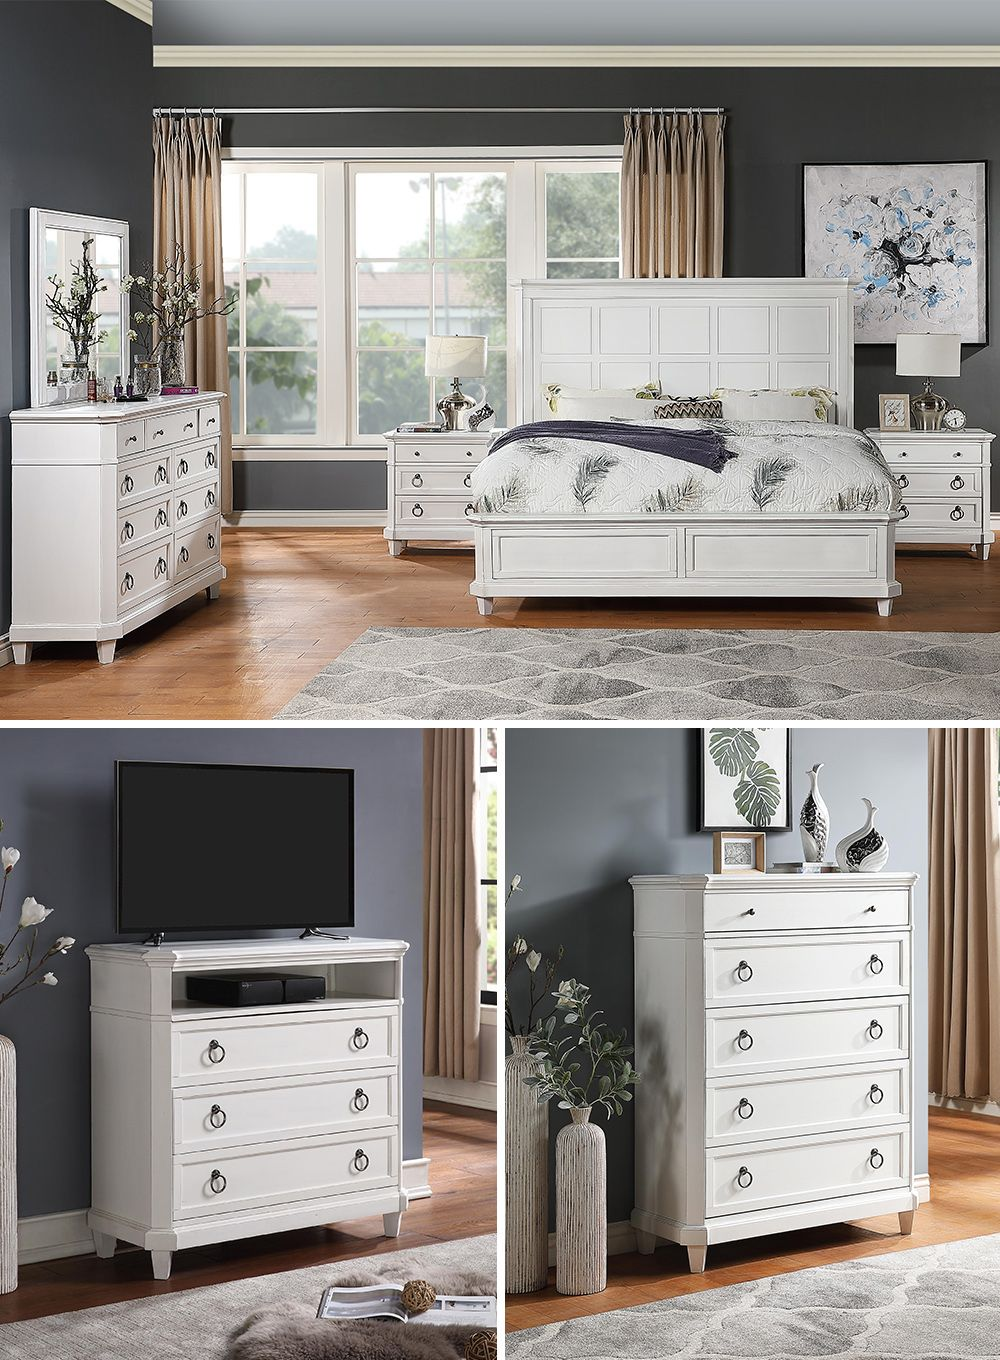 The Augusta Panel Bedroom Set Is A Great Choice With Its Sleek Design Complemented By Geometry Focused In 2020 Queen Sized Bedroom Sets Queen Sized Bedroom Bedroom Set